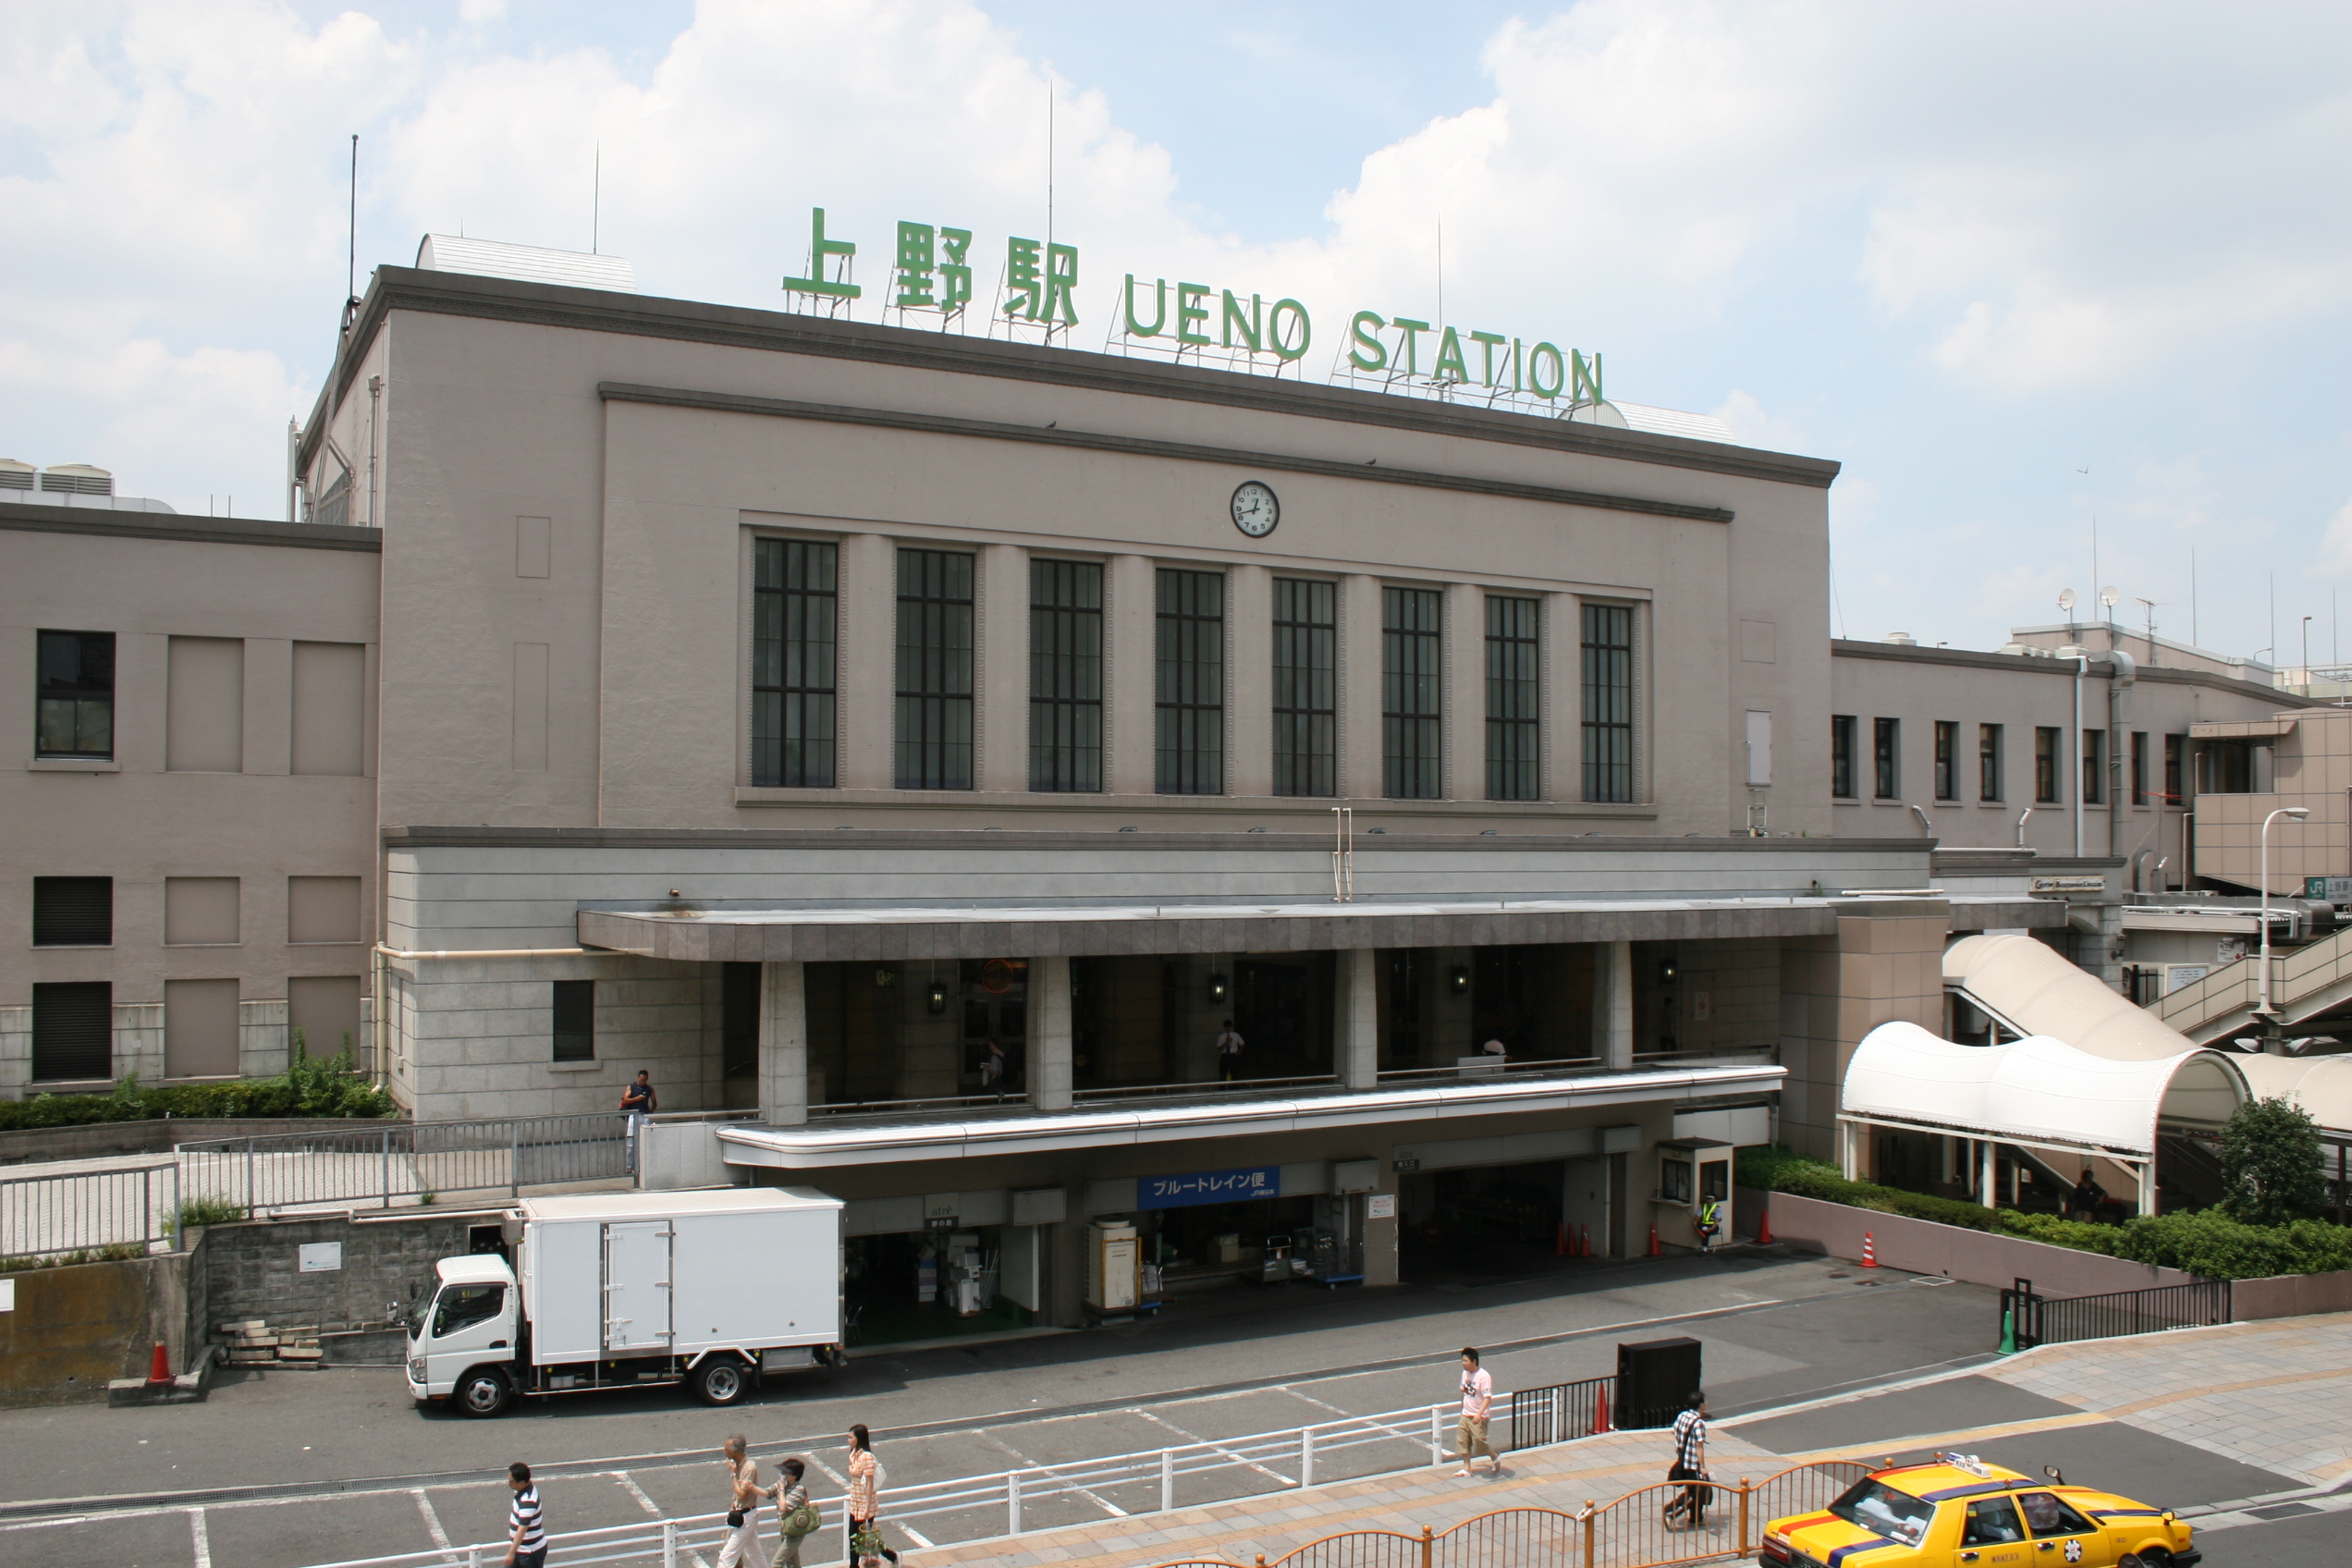 Ueno station main building